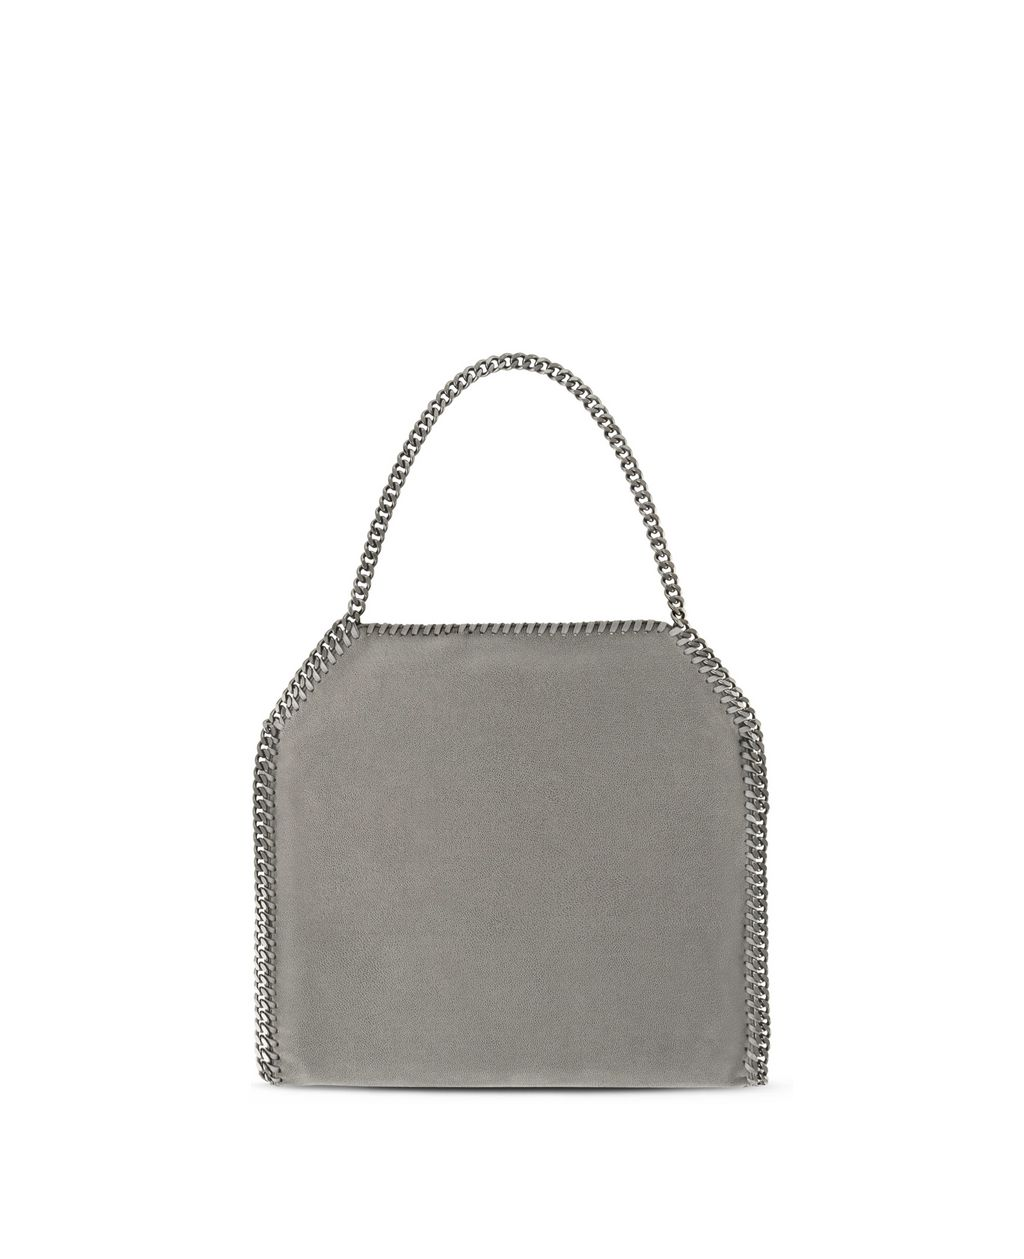 Falabella Small Tote in Shaggy Deer  - STELLA MCCARTNEY